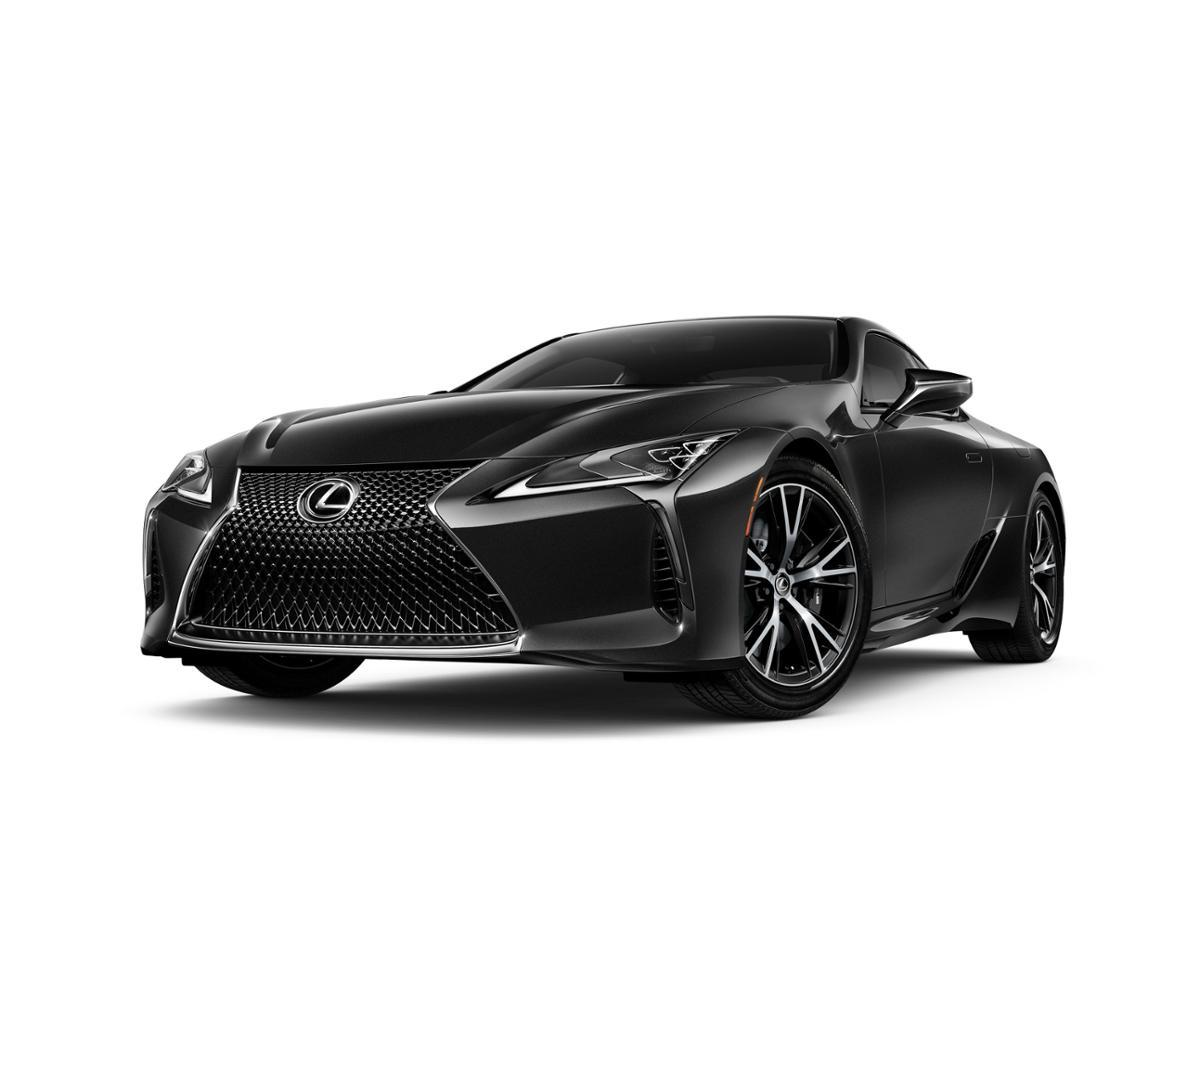 2019 Lexus LC 500 Vehicle Photo in Dallas, TX 75209